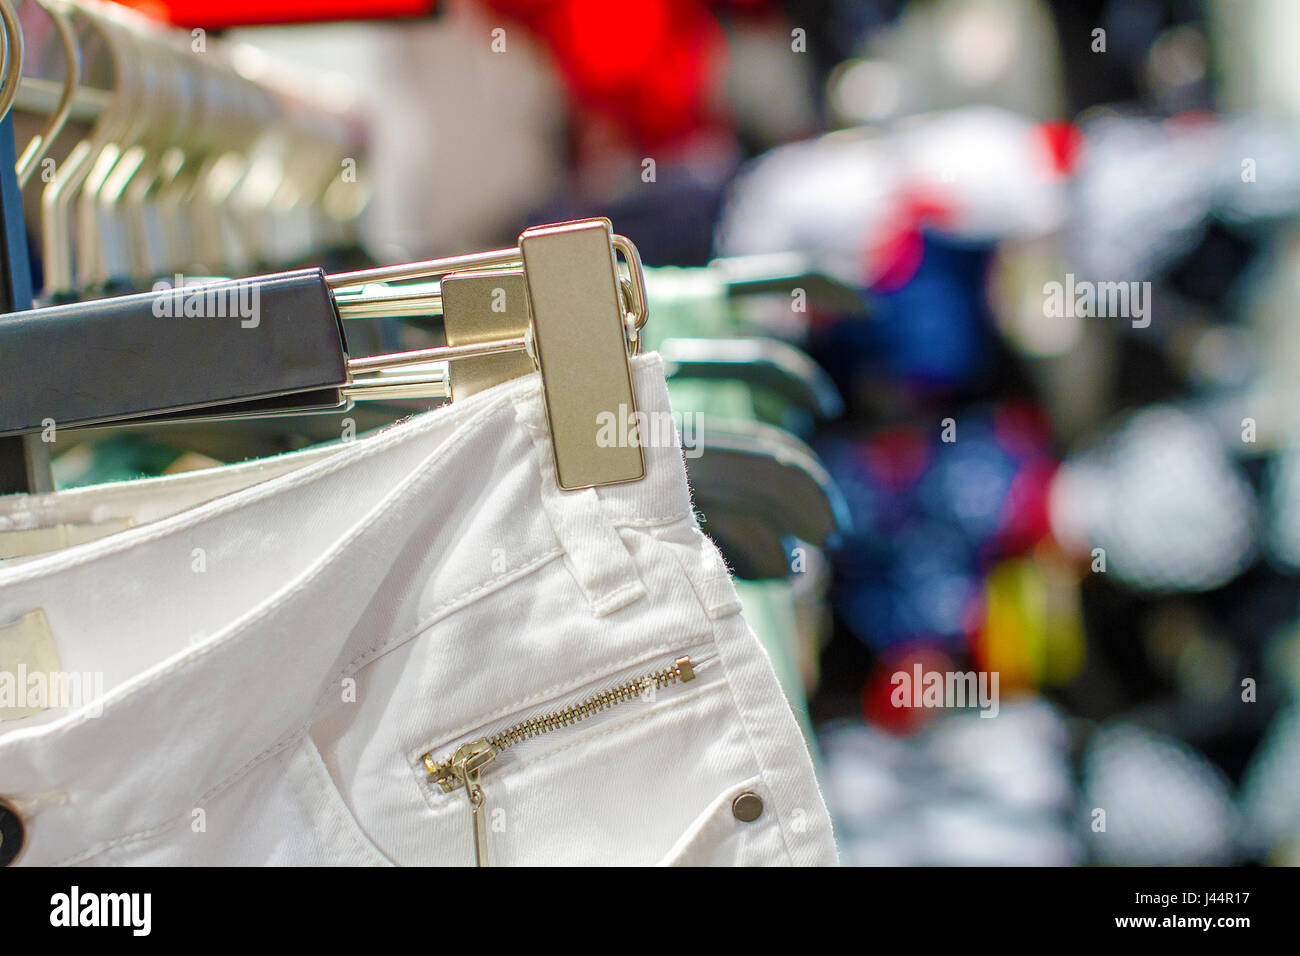 a Preview ladies skirts hanging on display - Stock Image